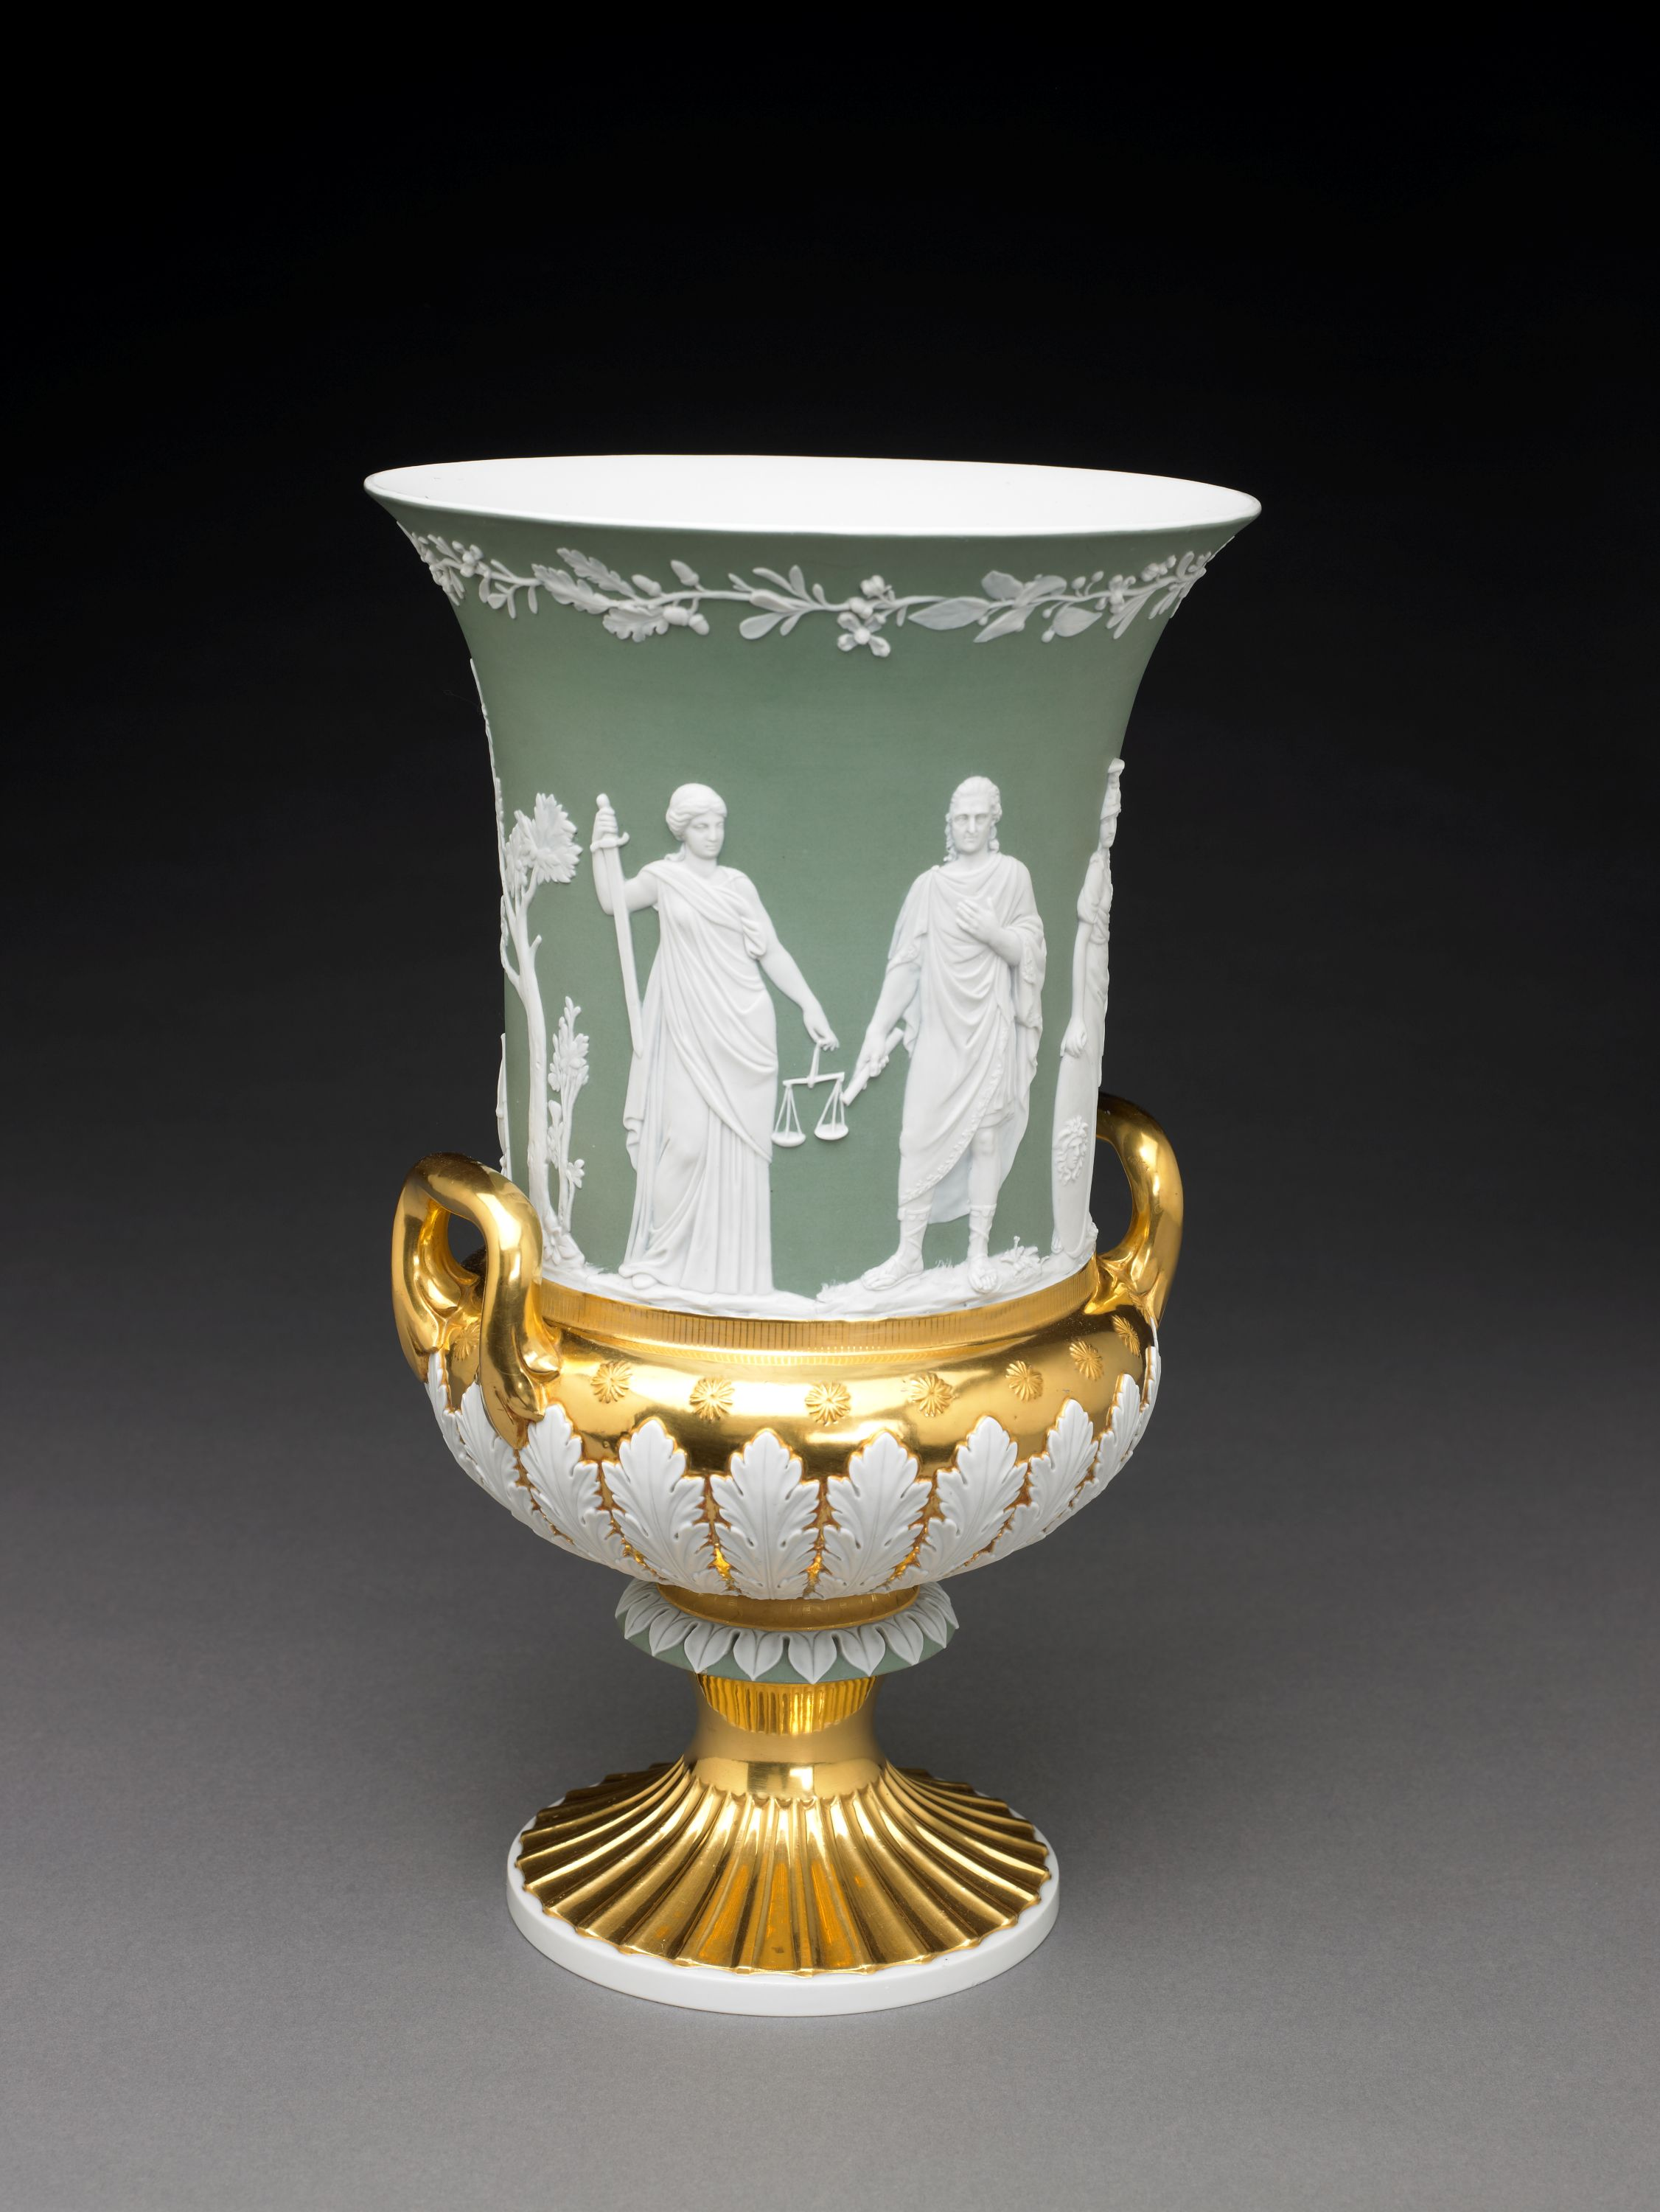 The BMA is lucky to call itself the home of the largest collection of Wedgwood outside of England. We couldn't get through this list without sharing a little bit of green – it is St. Patrick's Day, after all! // Vase, Meissen porcelain manufactory, est. 1710. Meissen Germany, 1818. Hard-paste porcelain with enamel decorations and gilding. Collection of the Art Fund, Inc. at the BMA. Purchase in honor of Donald M. James, Chairman of the Board, 2002-2005, AFI7.2005.